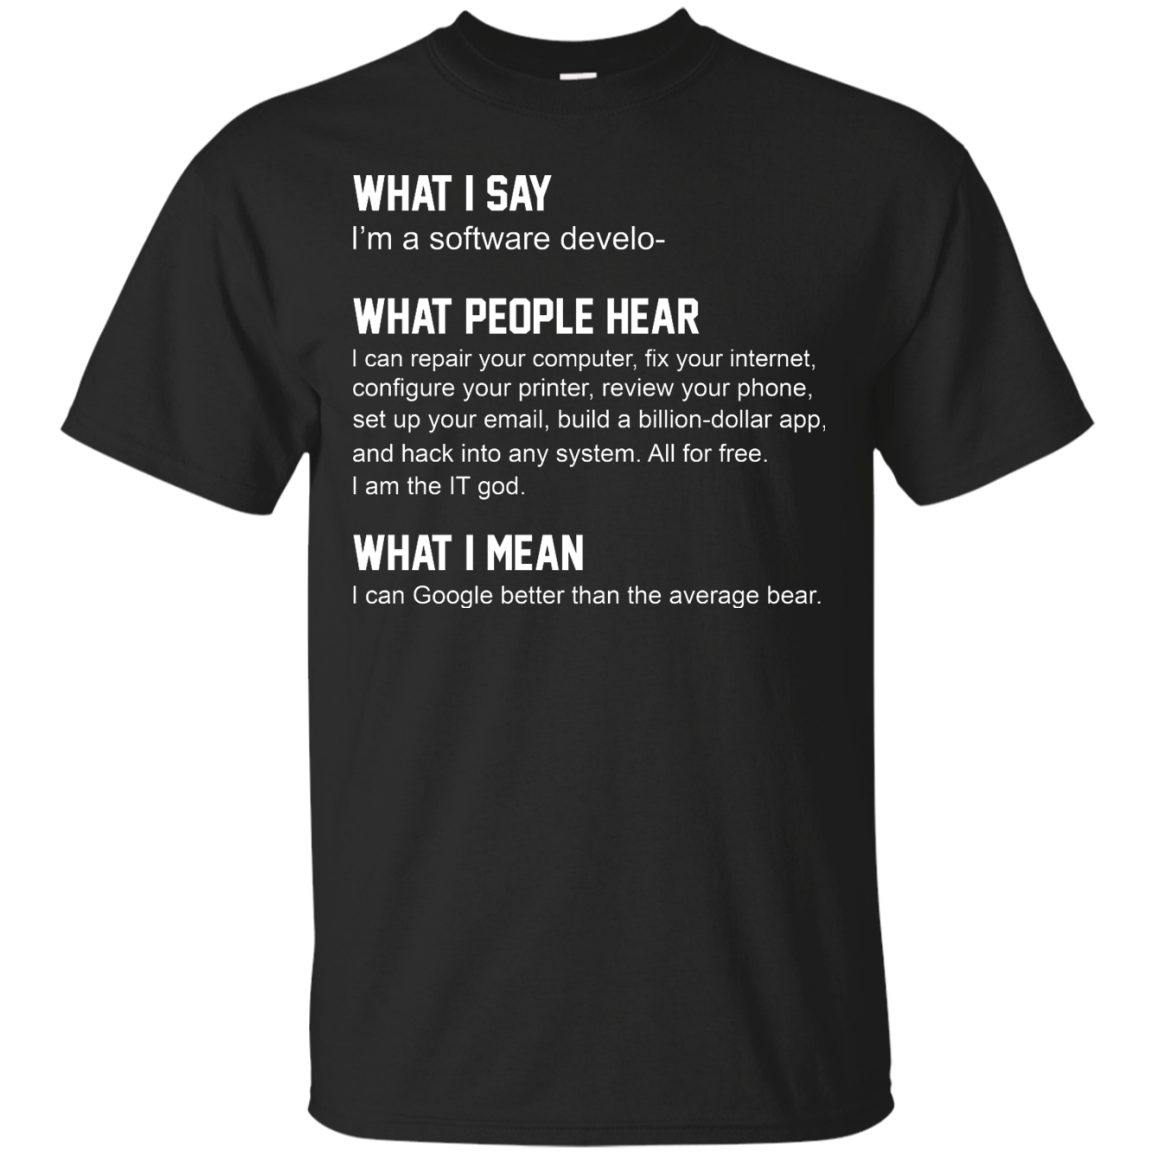 Developer Funny shirts what people hear when i say i'm a software developer shirt